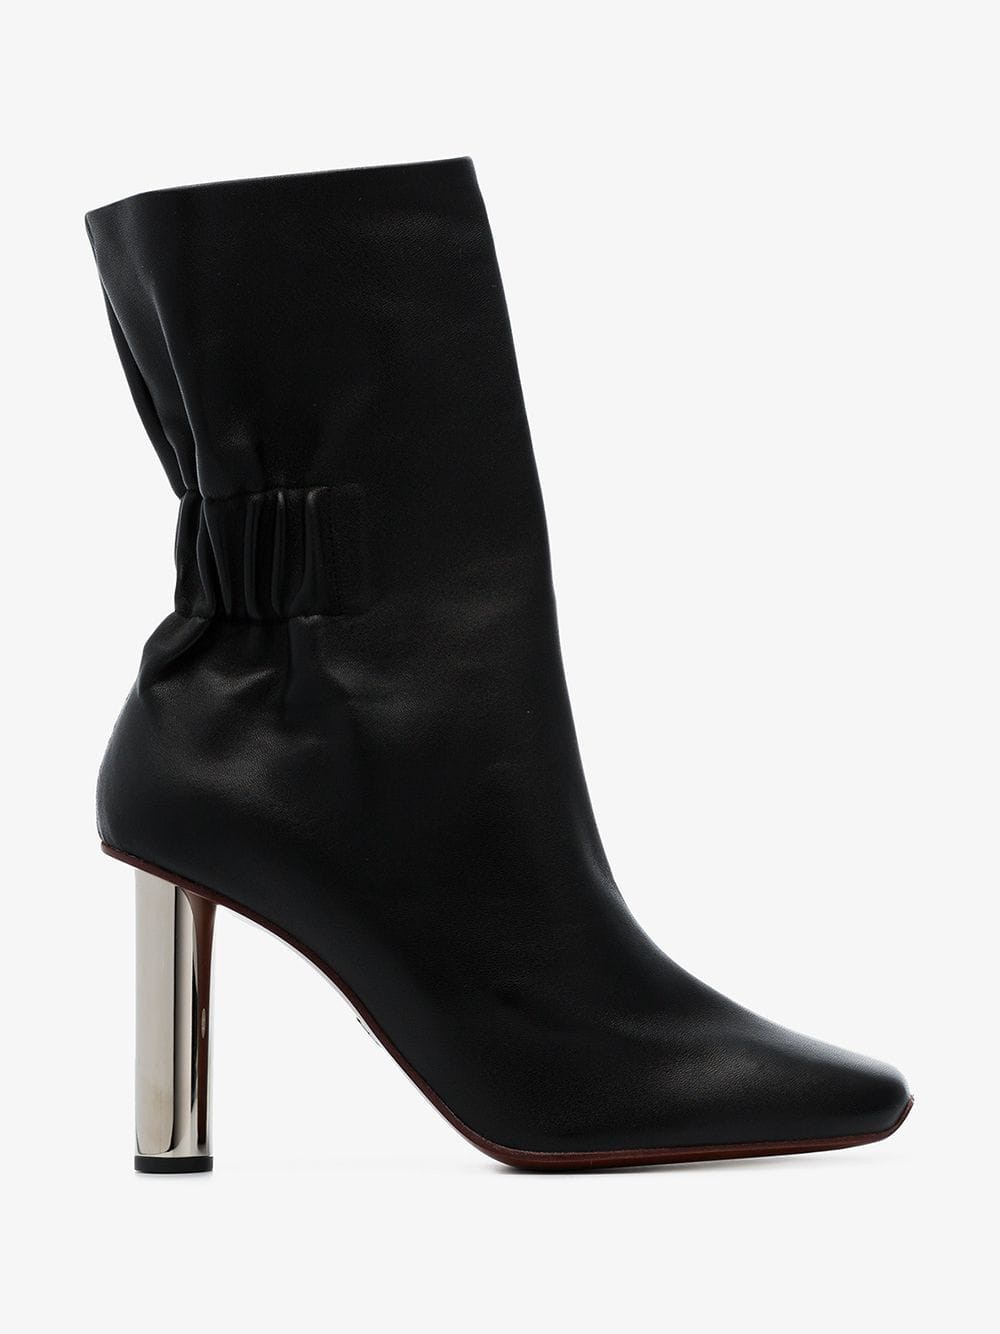 Proenza Schouler Ruched Nappa High Boots in black